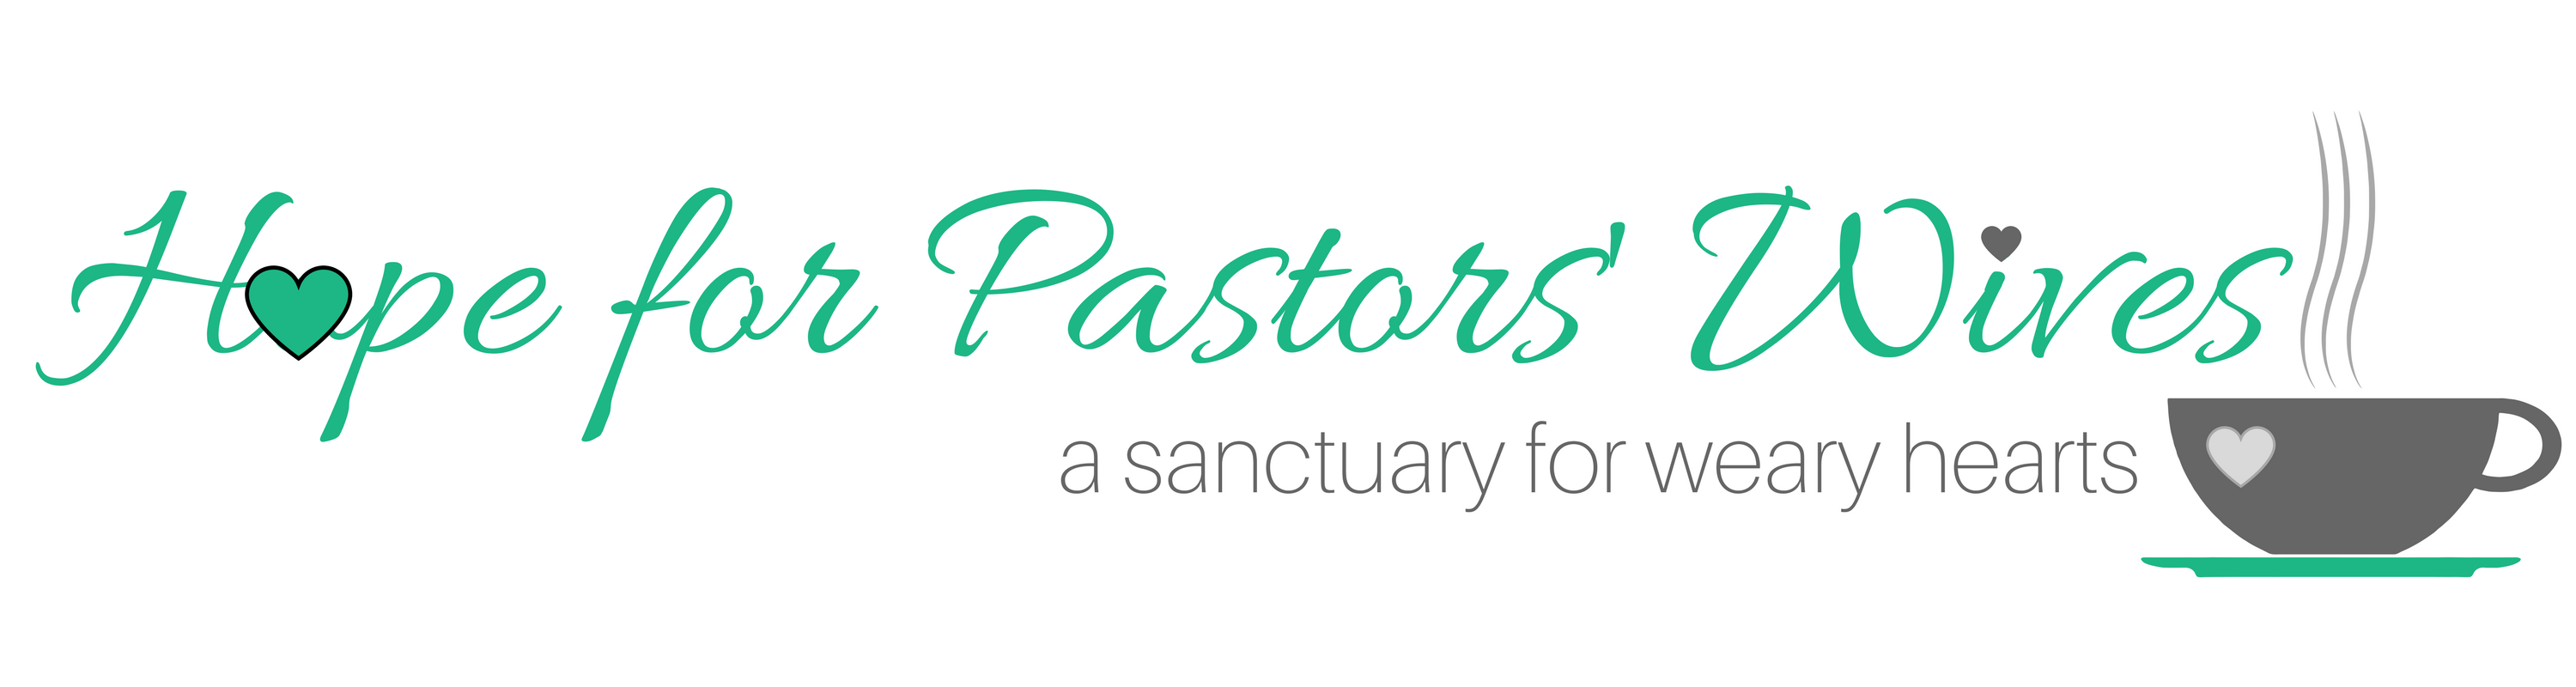 Embracing Grace - A Sanctuary of Hope for Pastors' Wives and Women in Ministry